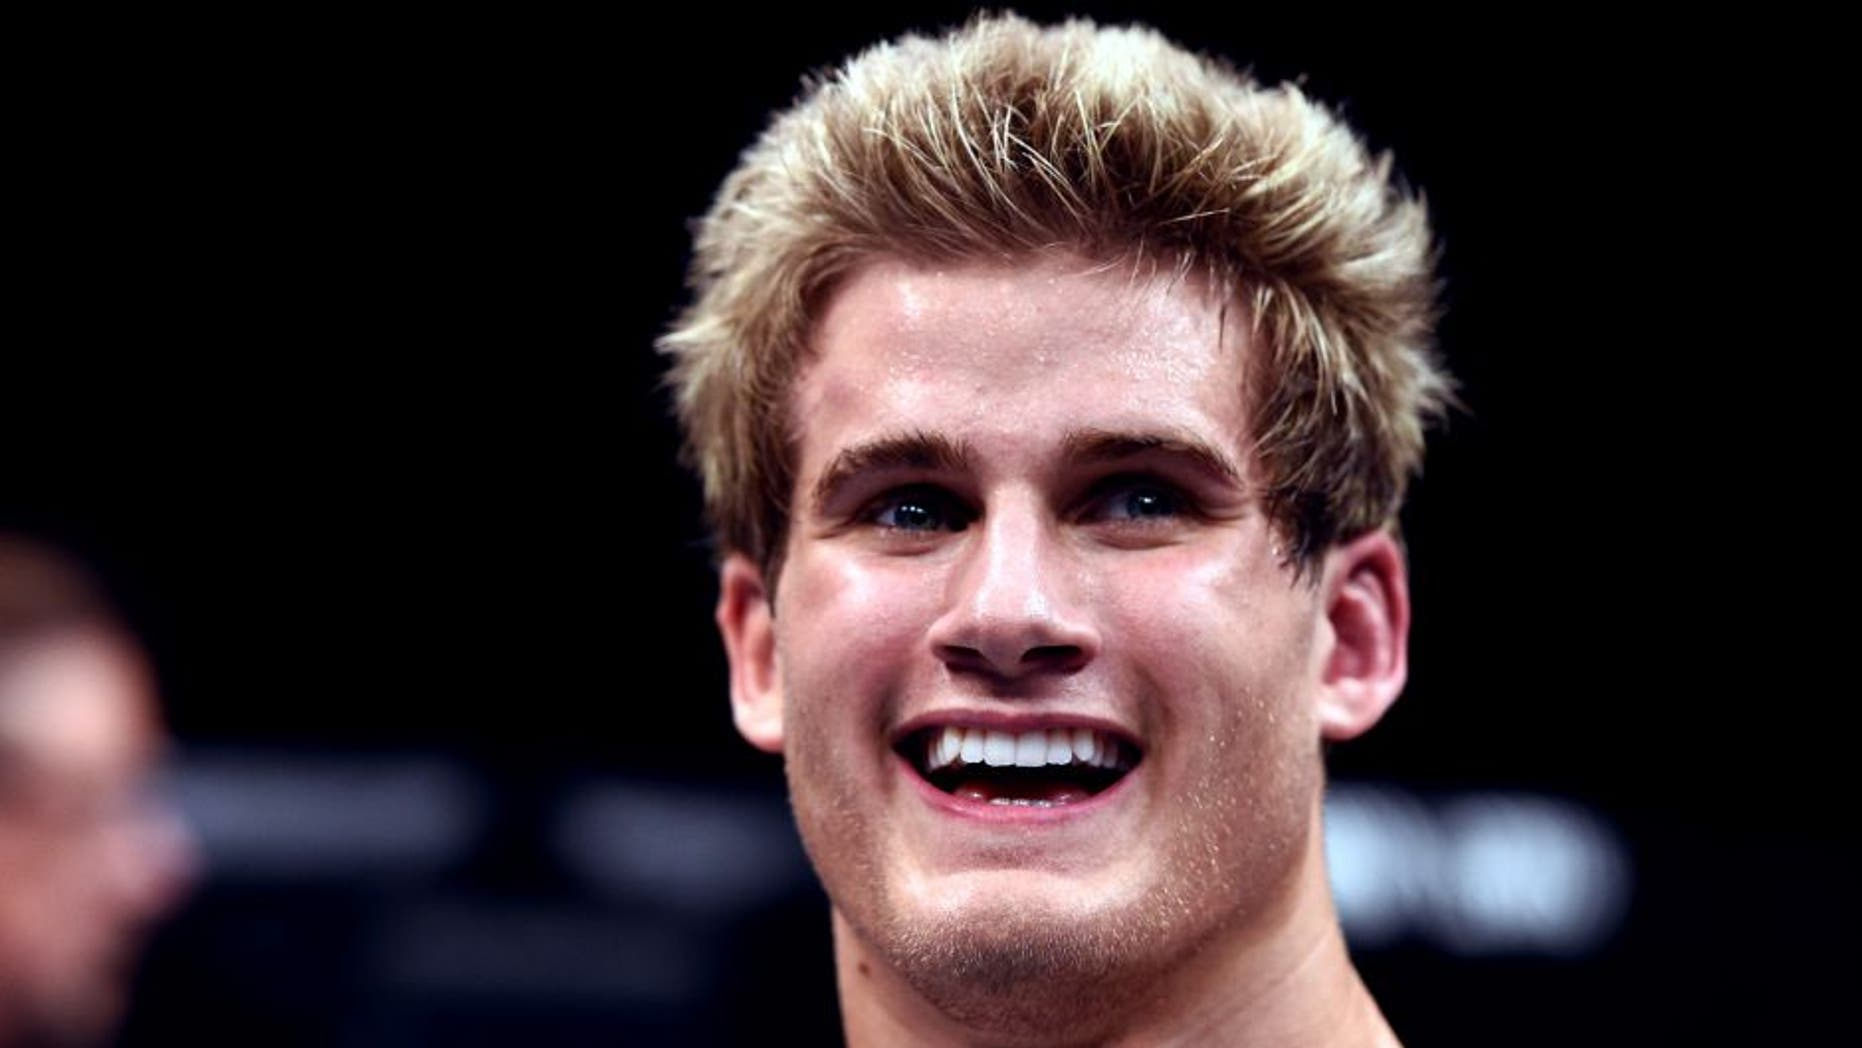 LAS VEGAS, NEVADA - DECEMBER 10: Sage Northcutt celebrates his win over Cody Pfister in their lightweight bout during the UFC Fight Night event at The Chelsea at the Cosmopolitan of Las Vegas on December 10, 2015 in Las Vegas, Nevada. (Photo by Jeff Bottari/Zuffa LLC/Zuffa LLC via Getty Images)